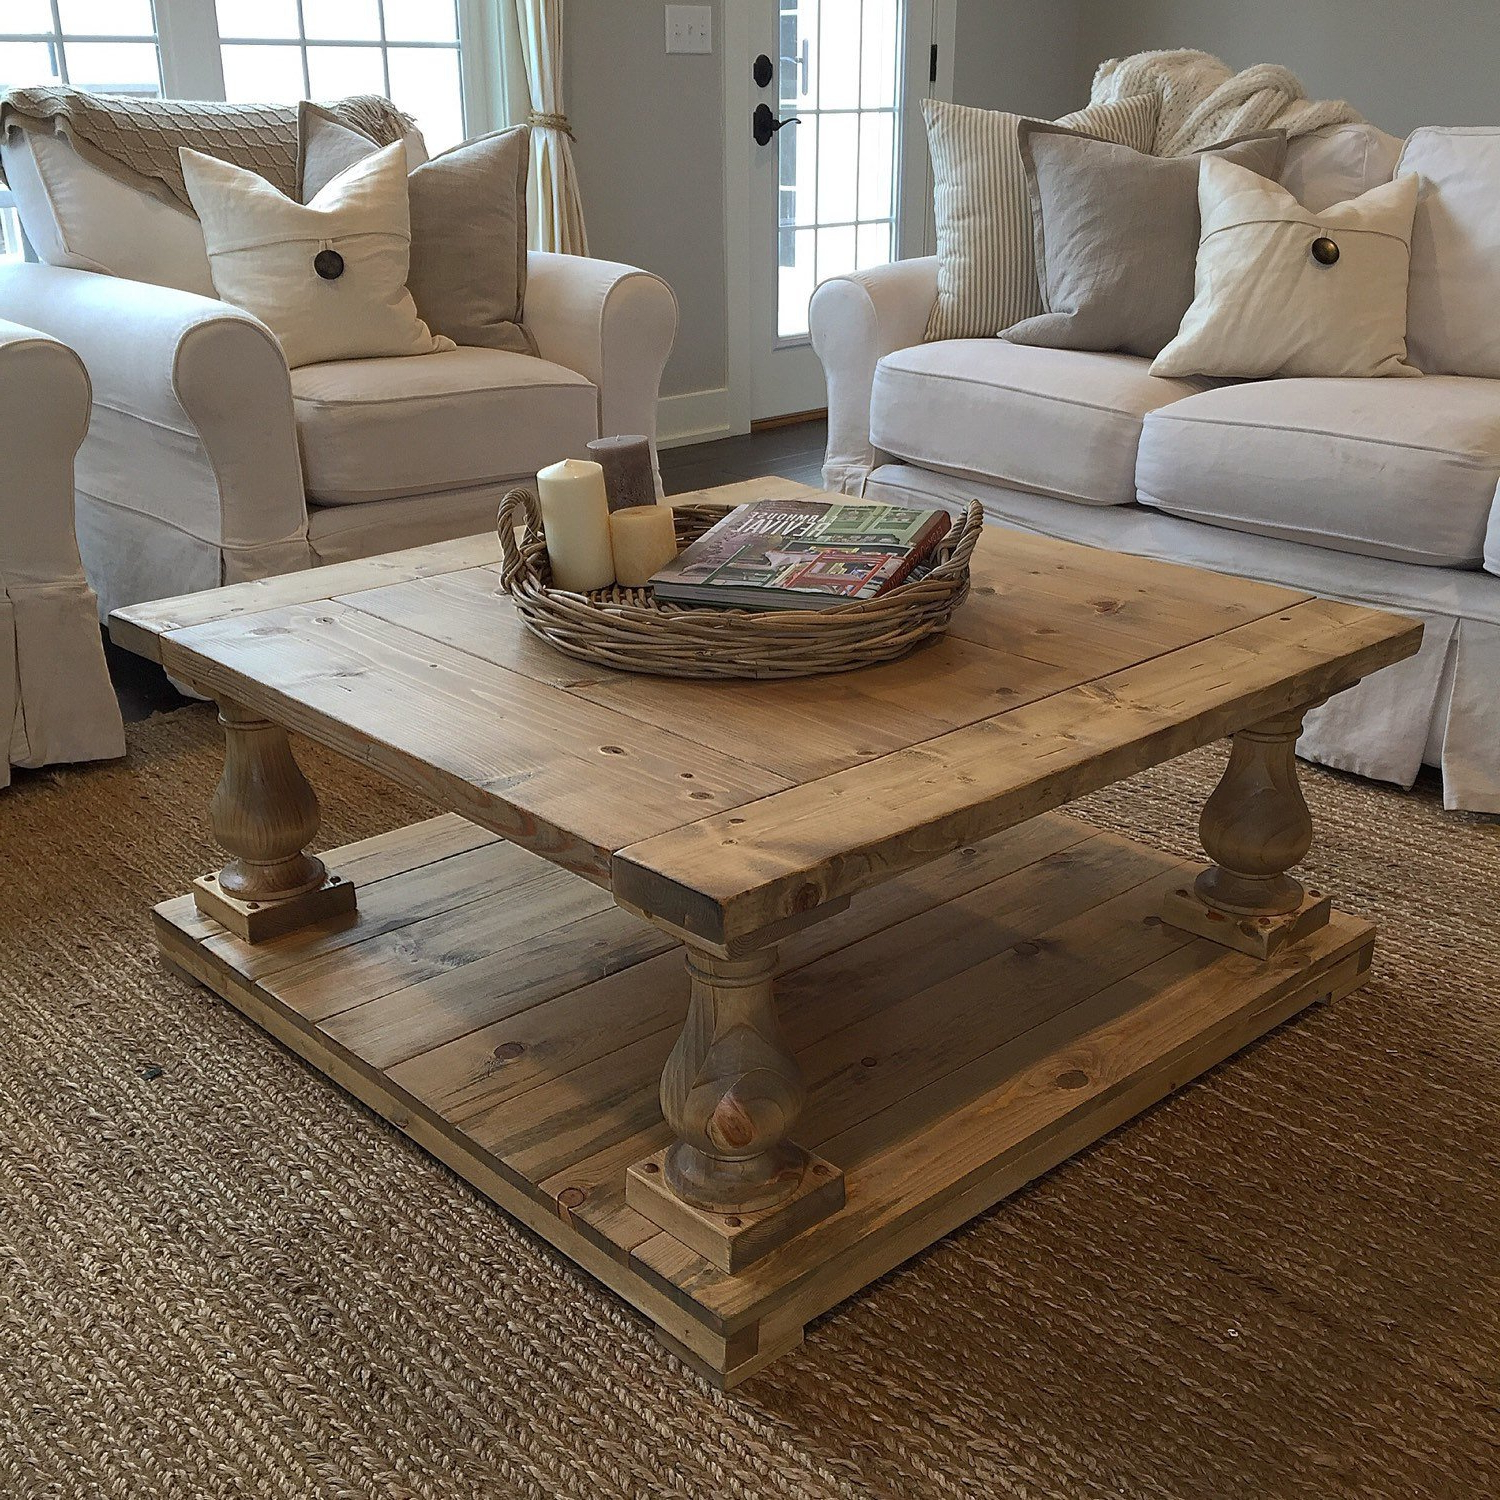 Large Scale Chinese Farmhouse Coffee Tables With 2019 Rustic Farmhouse Cottage Baluster Coffee Table (Gallery 6 of 20)